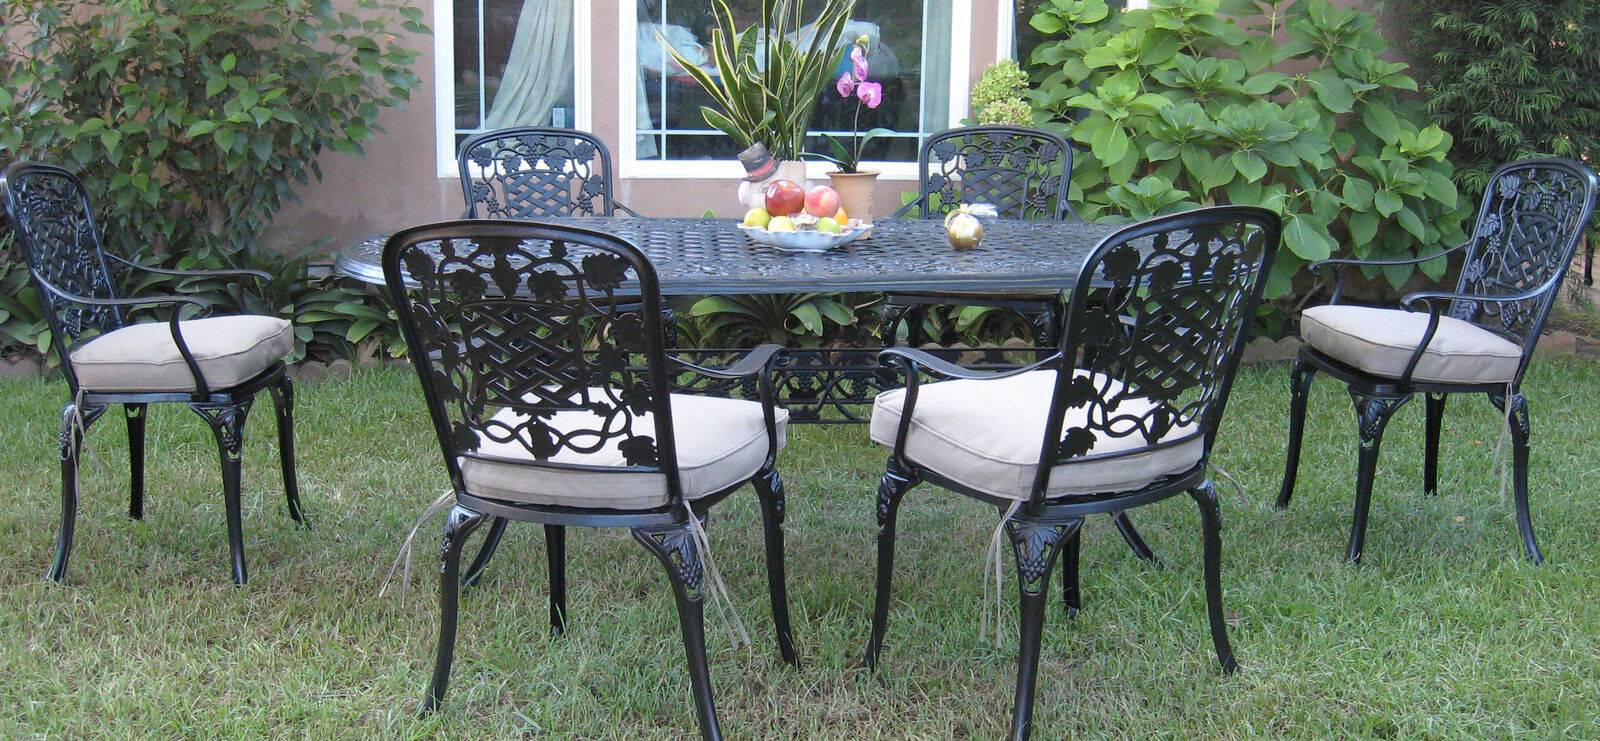 New Cast Aluminum Outdoor Patio 7 Piece Dining Set F With